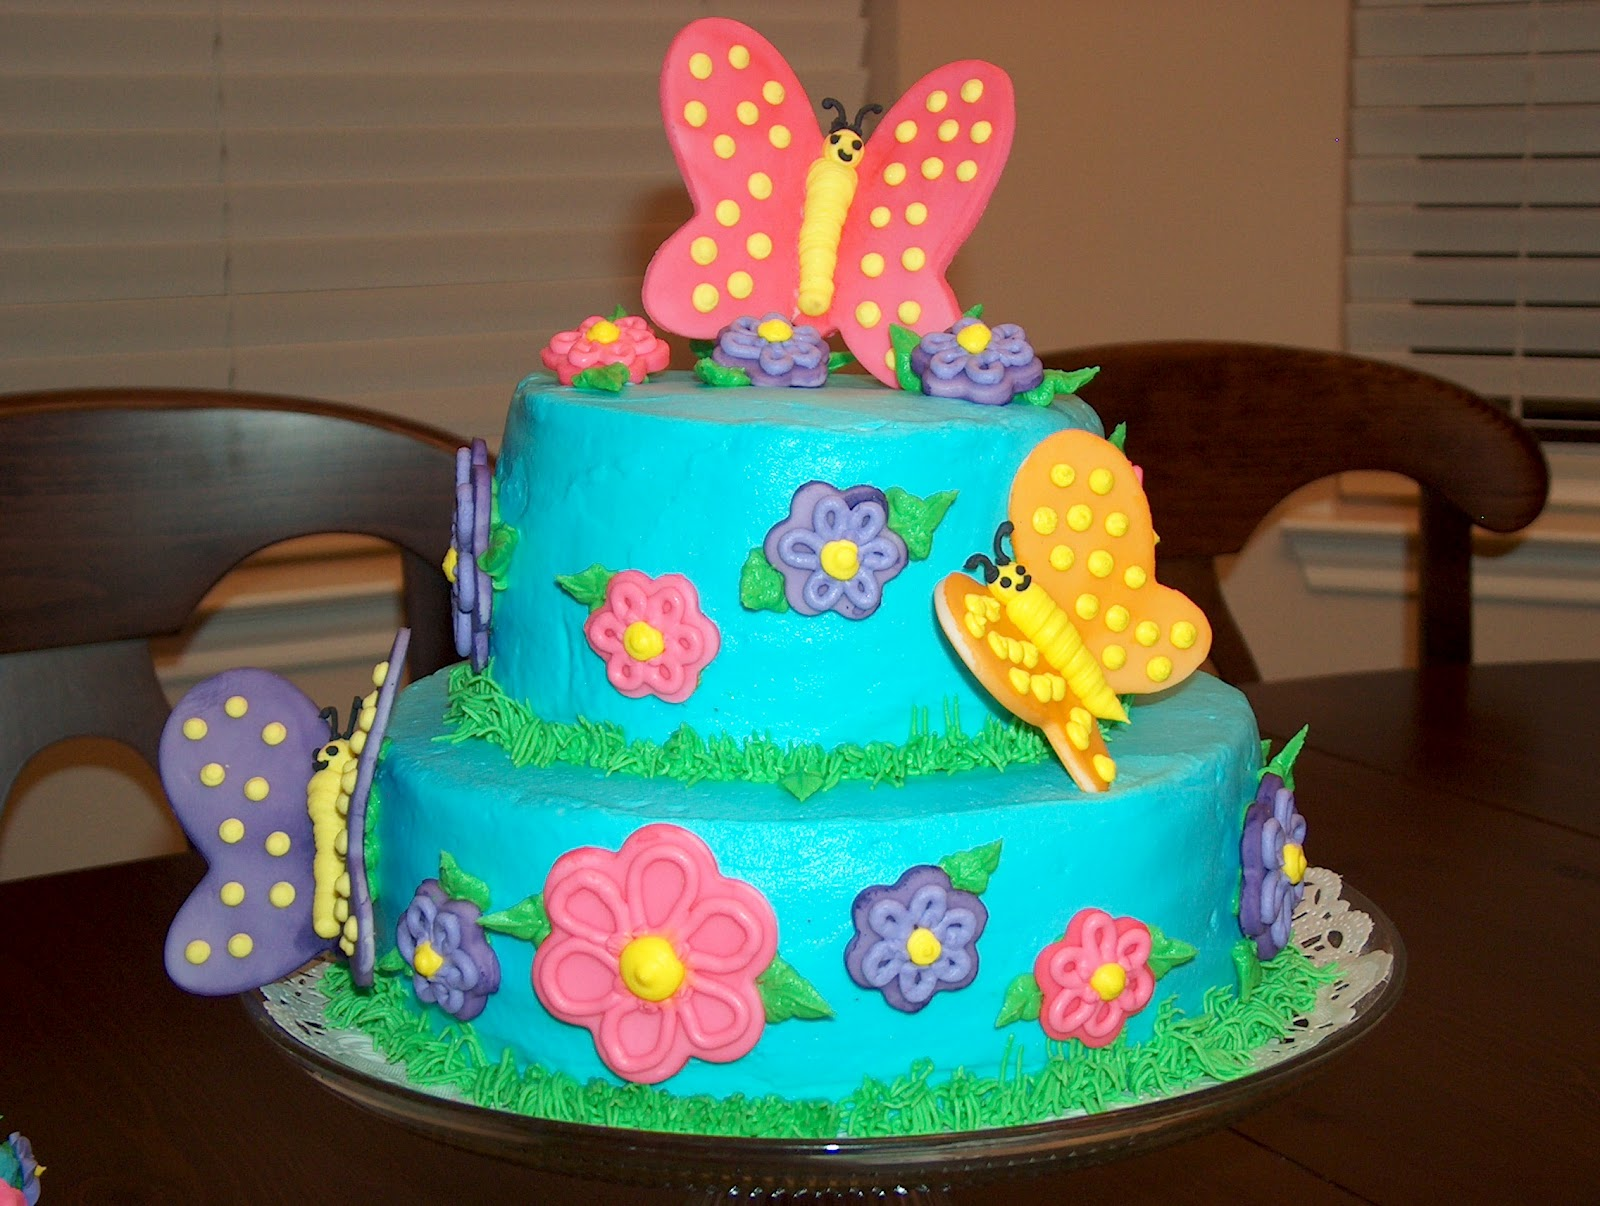 Cake Decoration Butterfly : Themed Cakes, Birthday Cakes, Wedding Cakes: ButterFly Themed Cakes